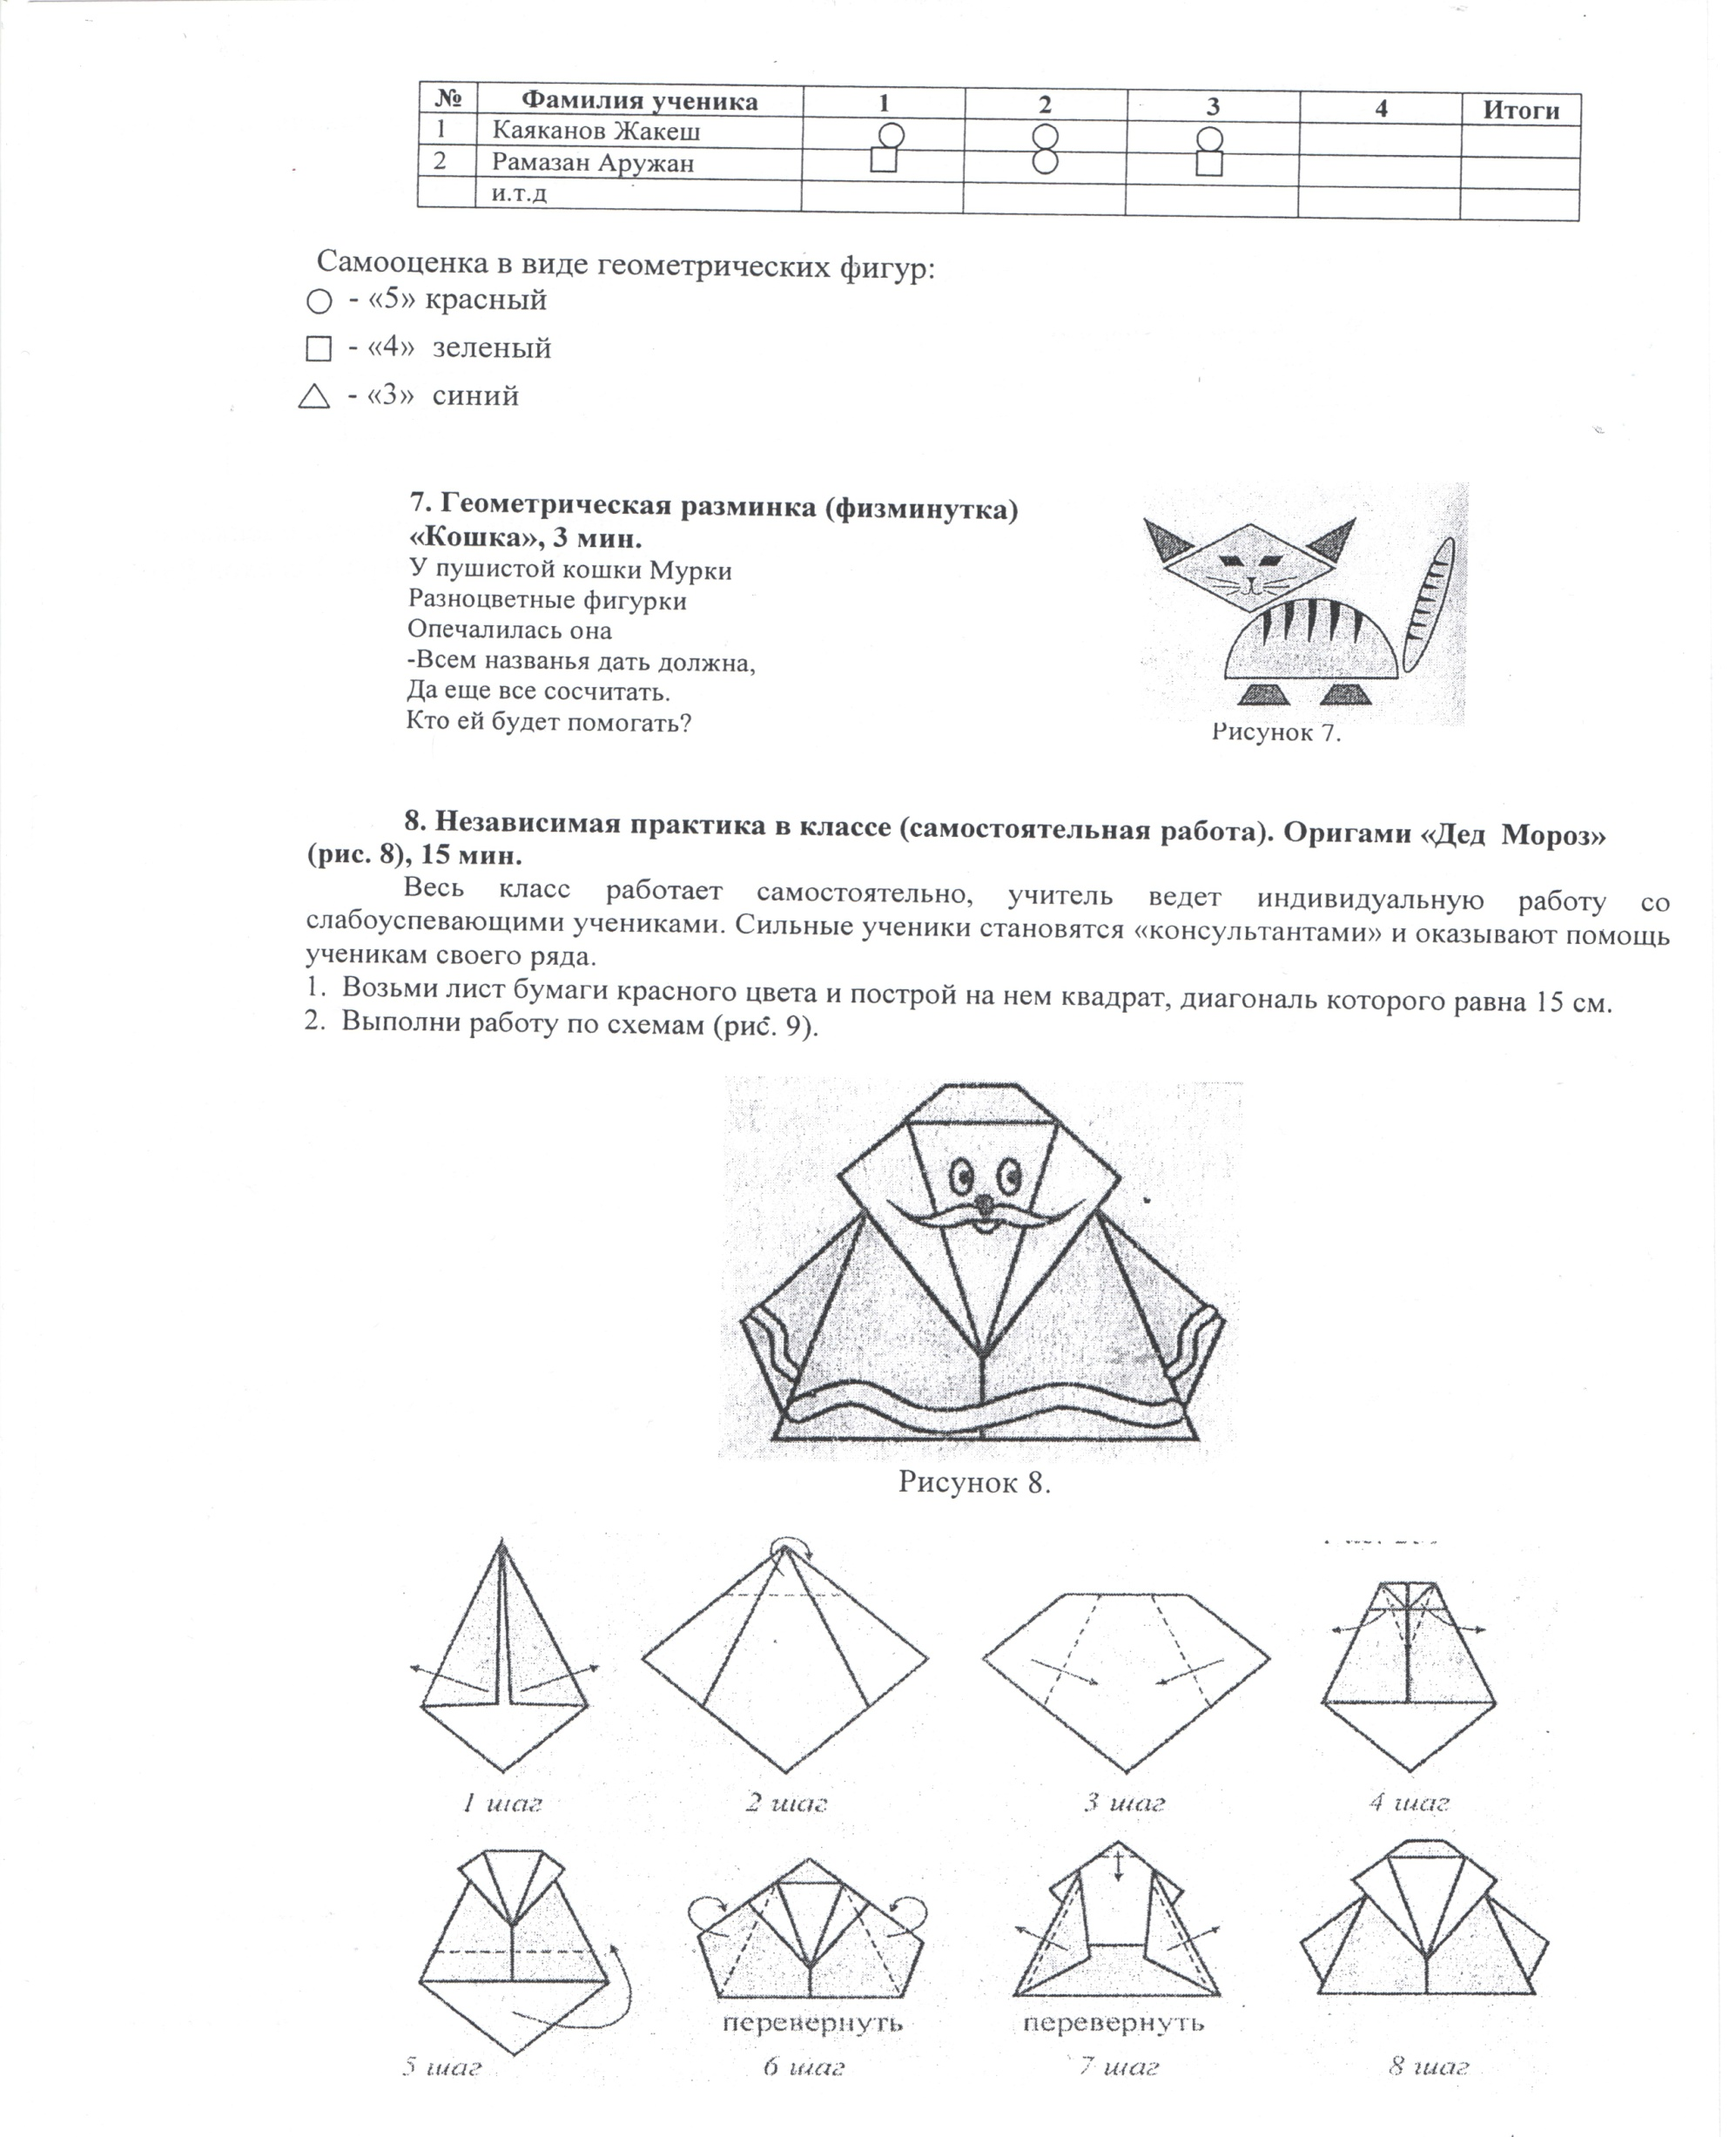 C:\Users\Школа 2\Documents\Scanned Documents\Рисунок (266).jpg